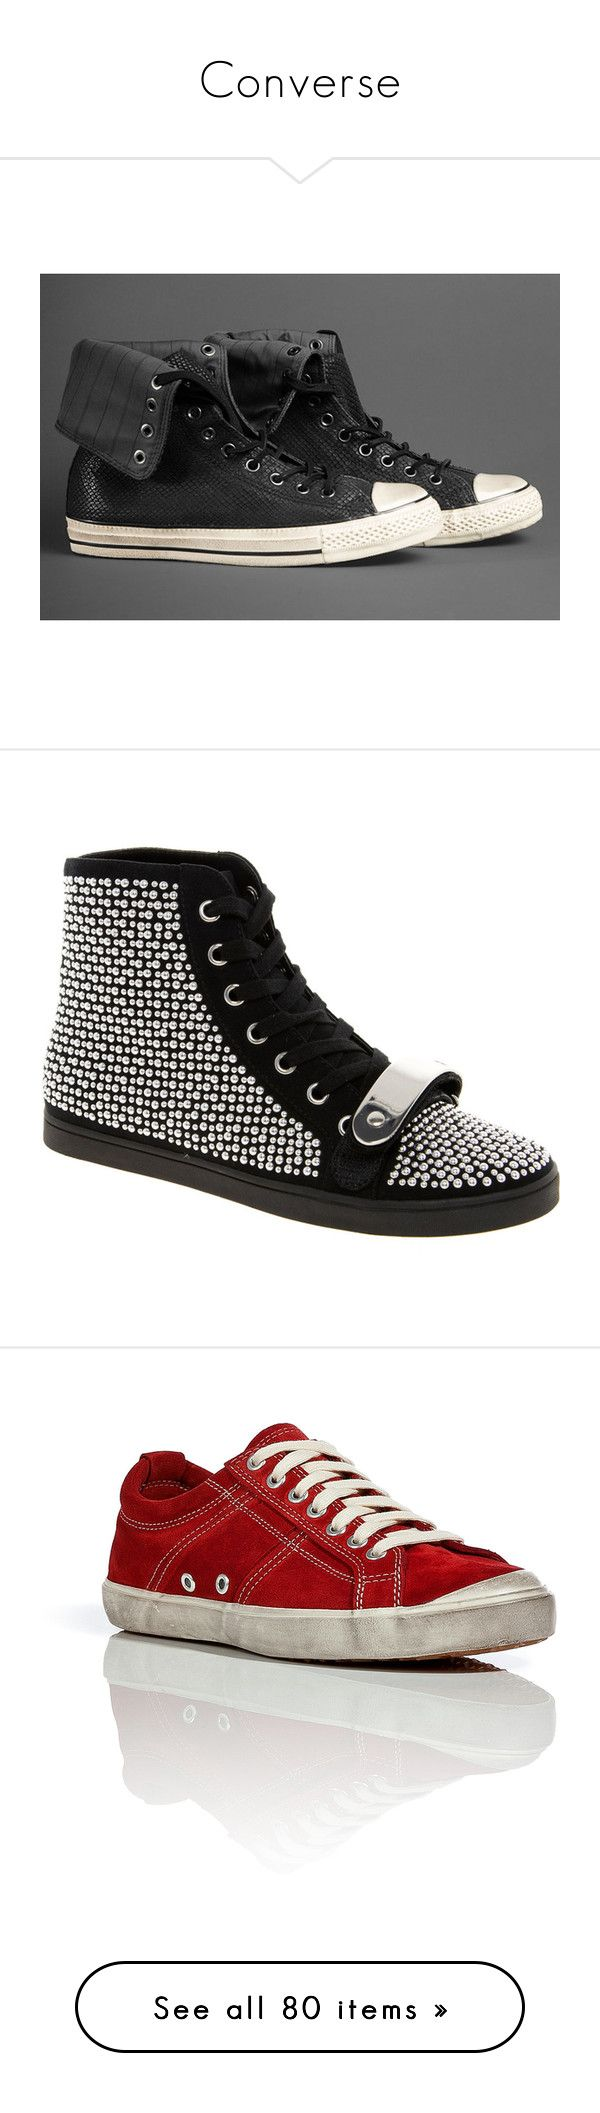 """""""Converse"""" by son-of-hades on Polyvore featuring shoes, sneakers, asos, black, tenis, high top sneakers, black studded high tops, black high top shoes, black high tops e studded high tops"""